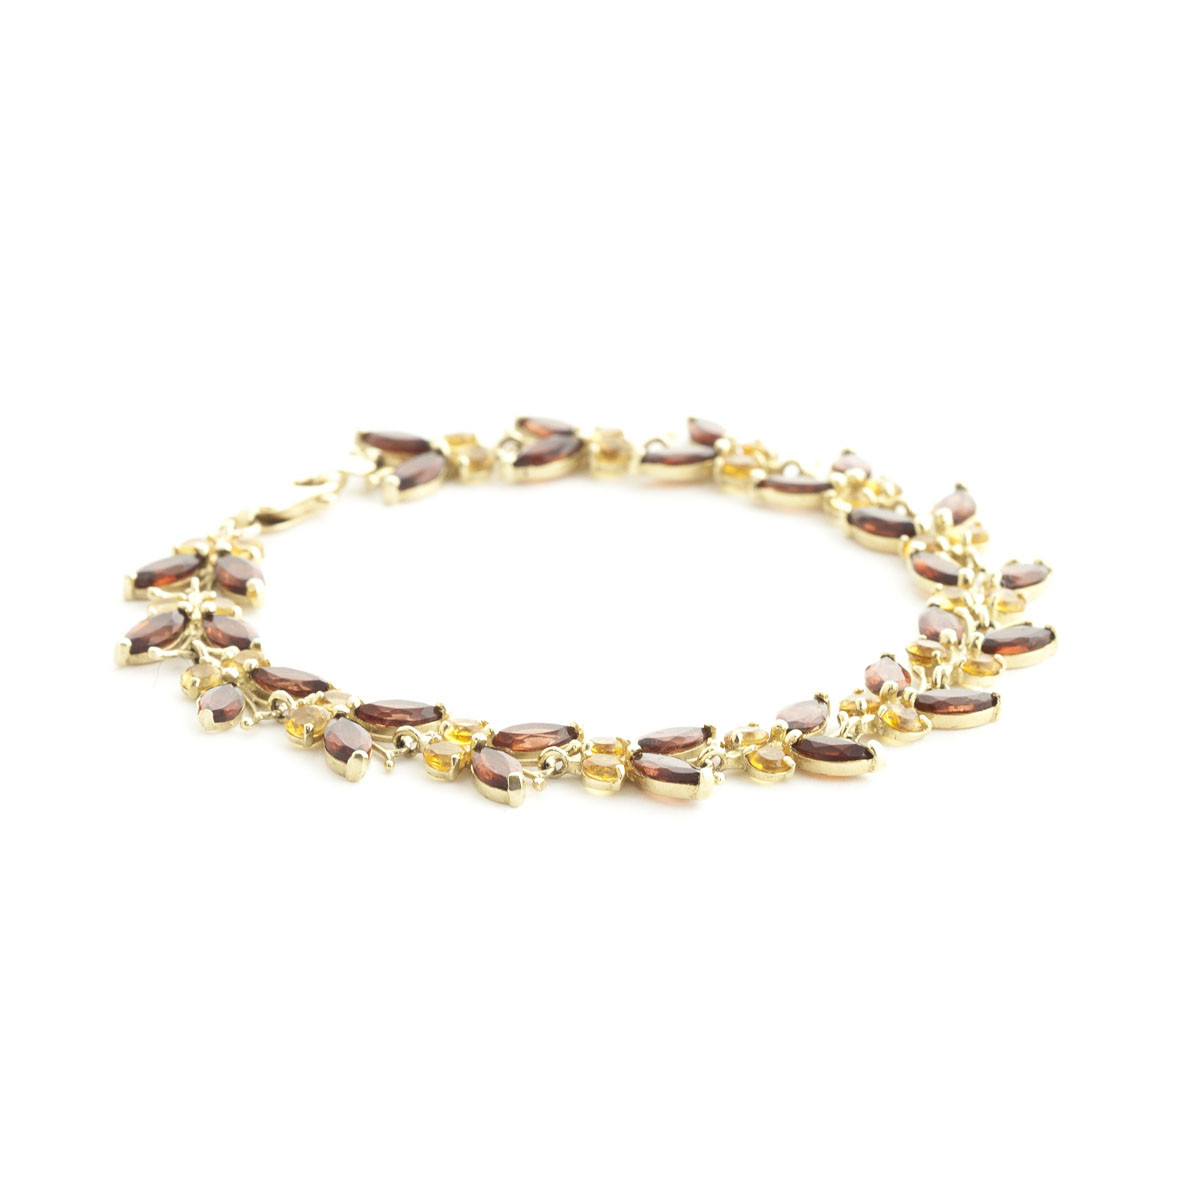 Garnet & Citrine Butterfly Bracelet in 9ct Gold